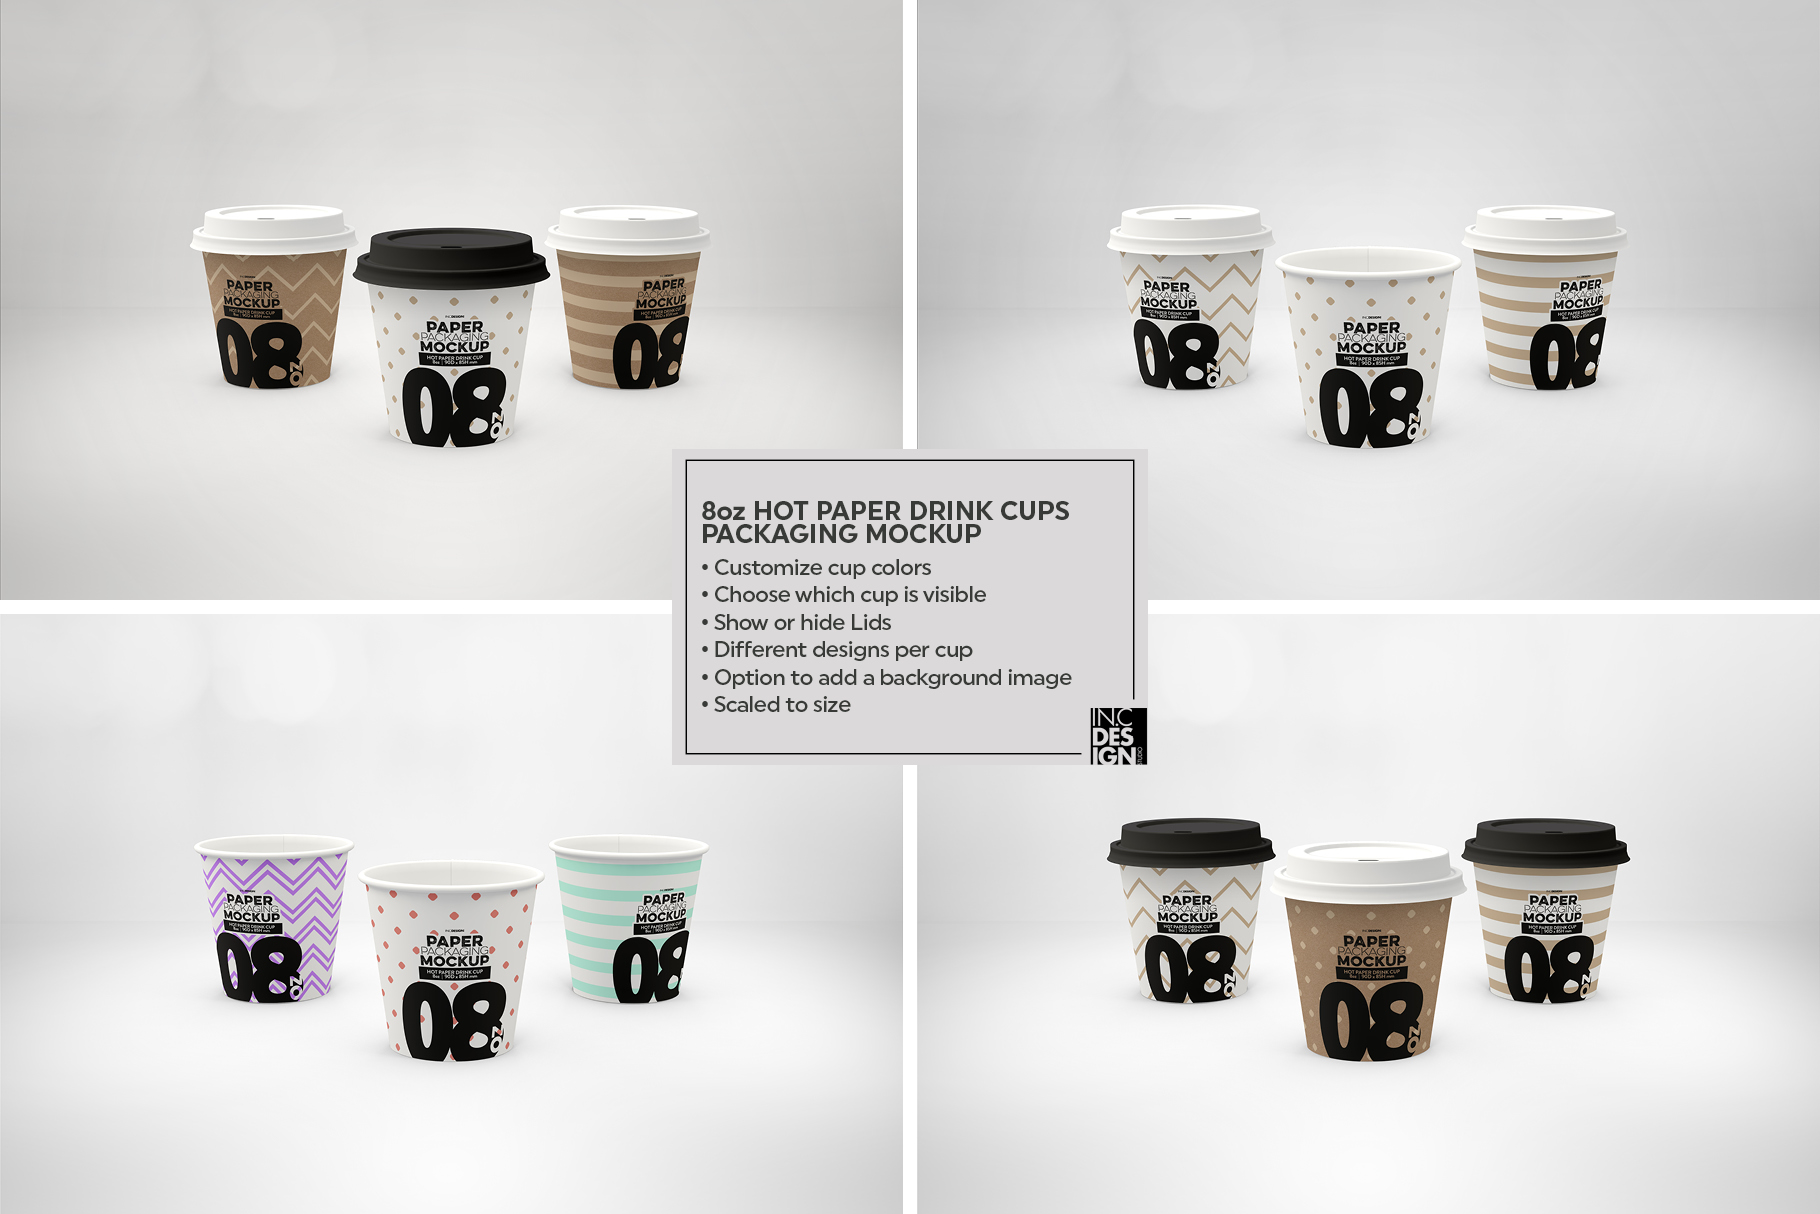 Paper Hot Drink Cups Packaging Mockup example image 18